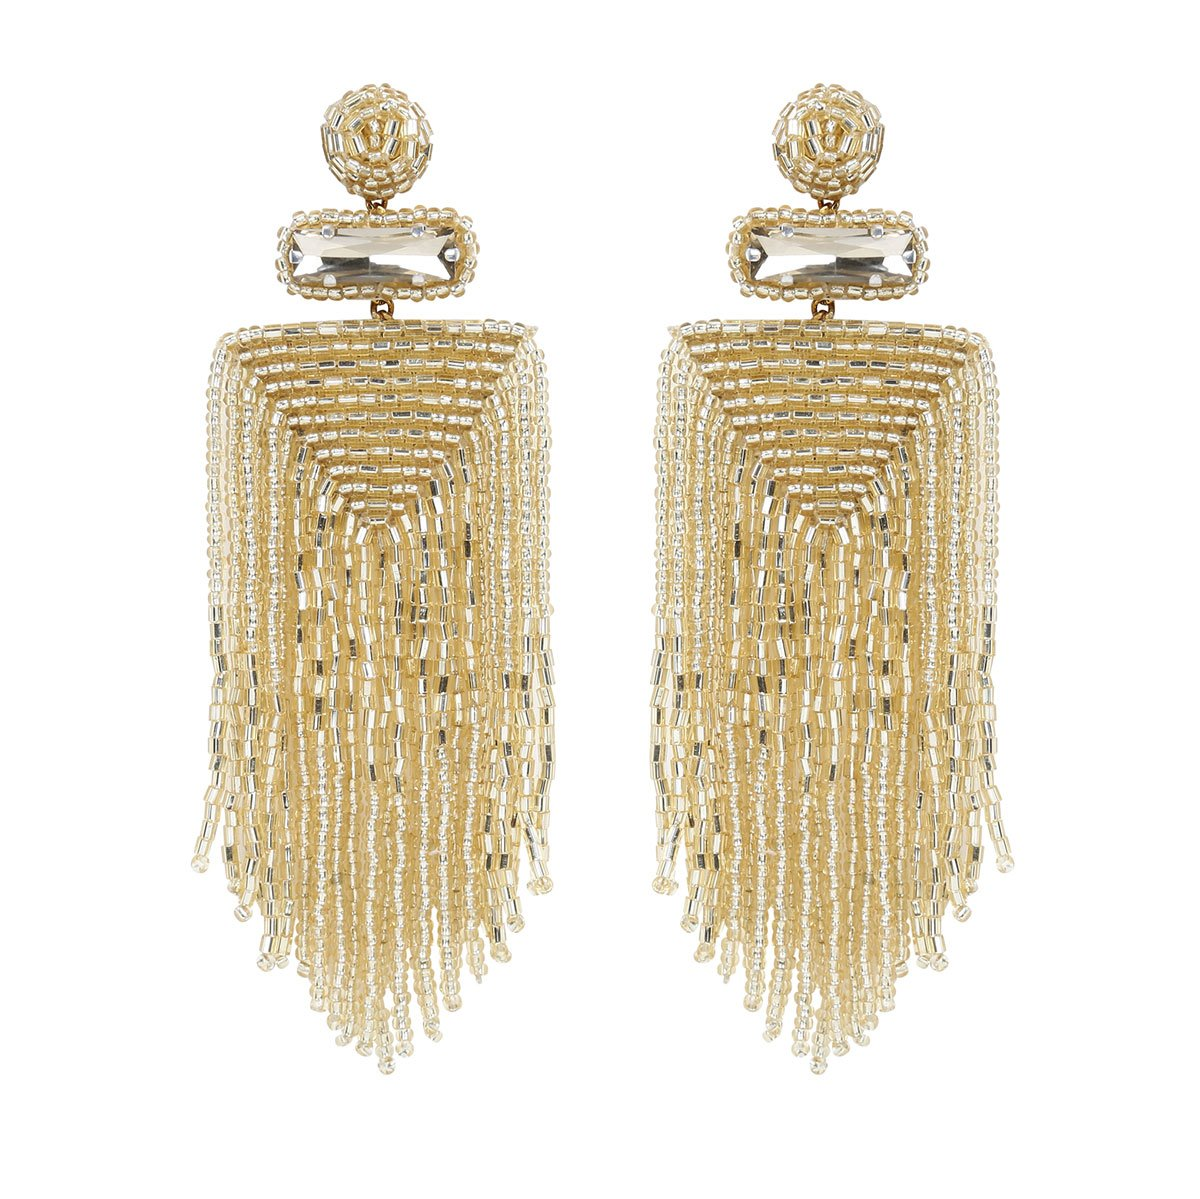 Handmade Embroidered Deepa by Deepa Gurnani Gold Jody Earrings